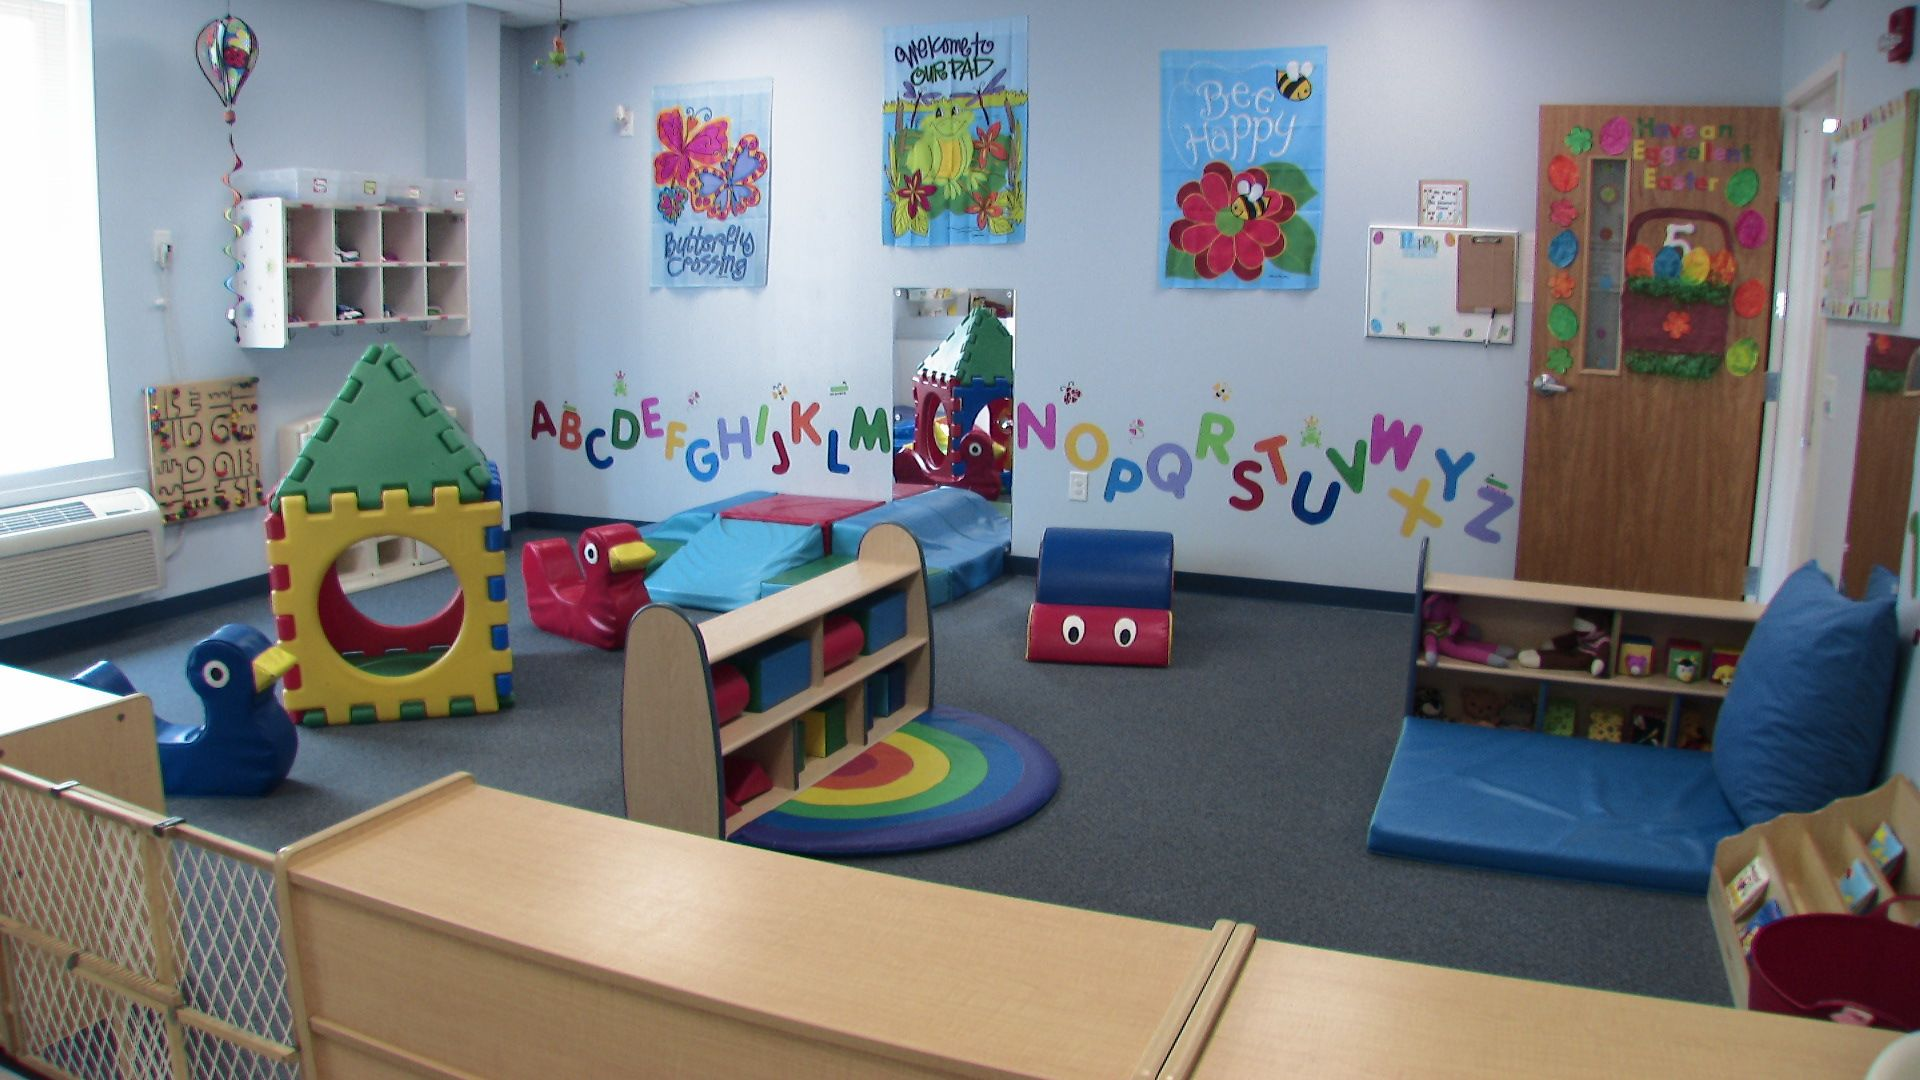 Infants Classroom Decoration Ideas : This would be an awesome daycare class classroom